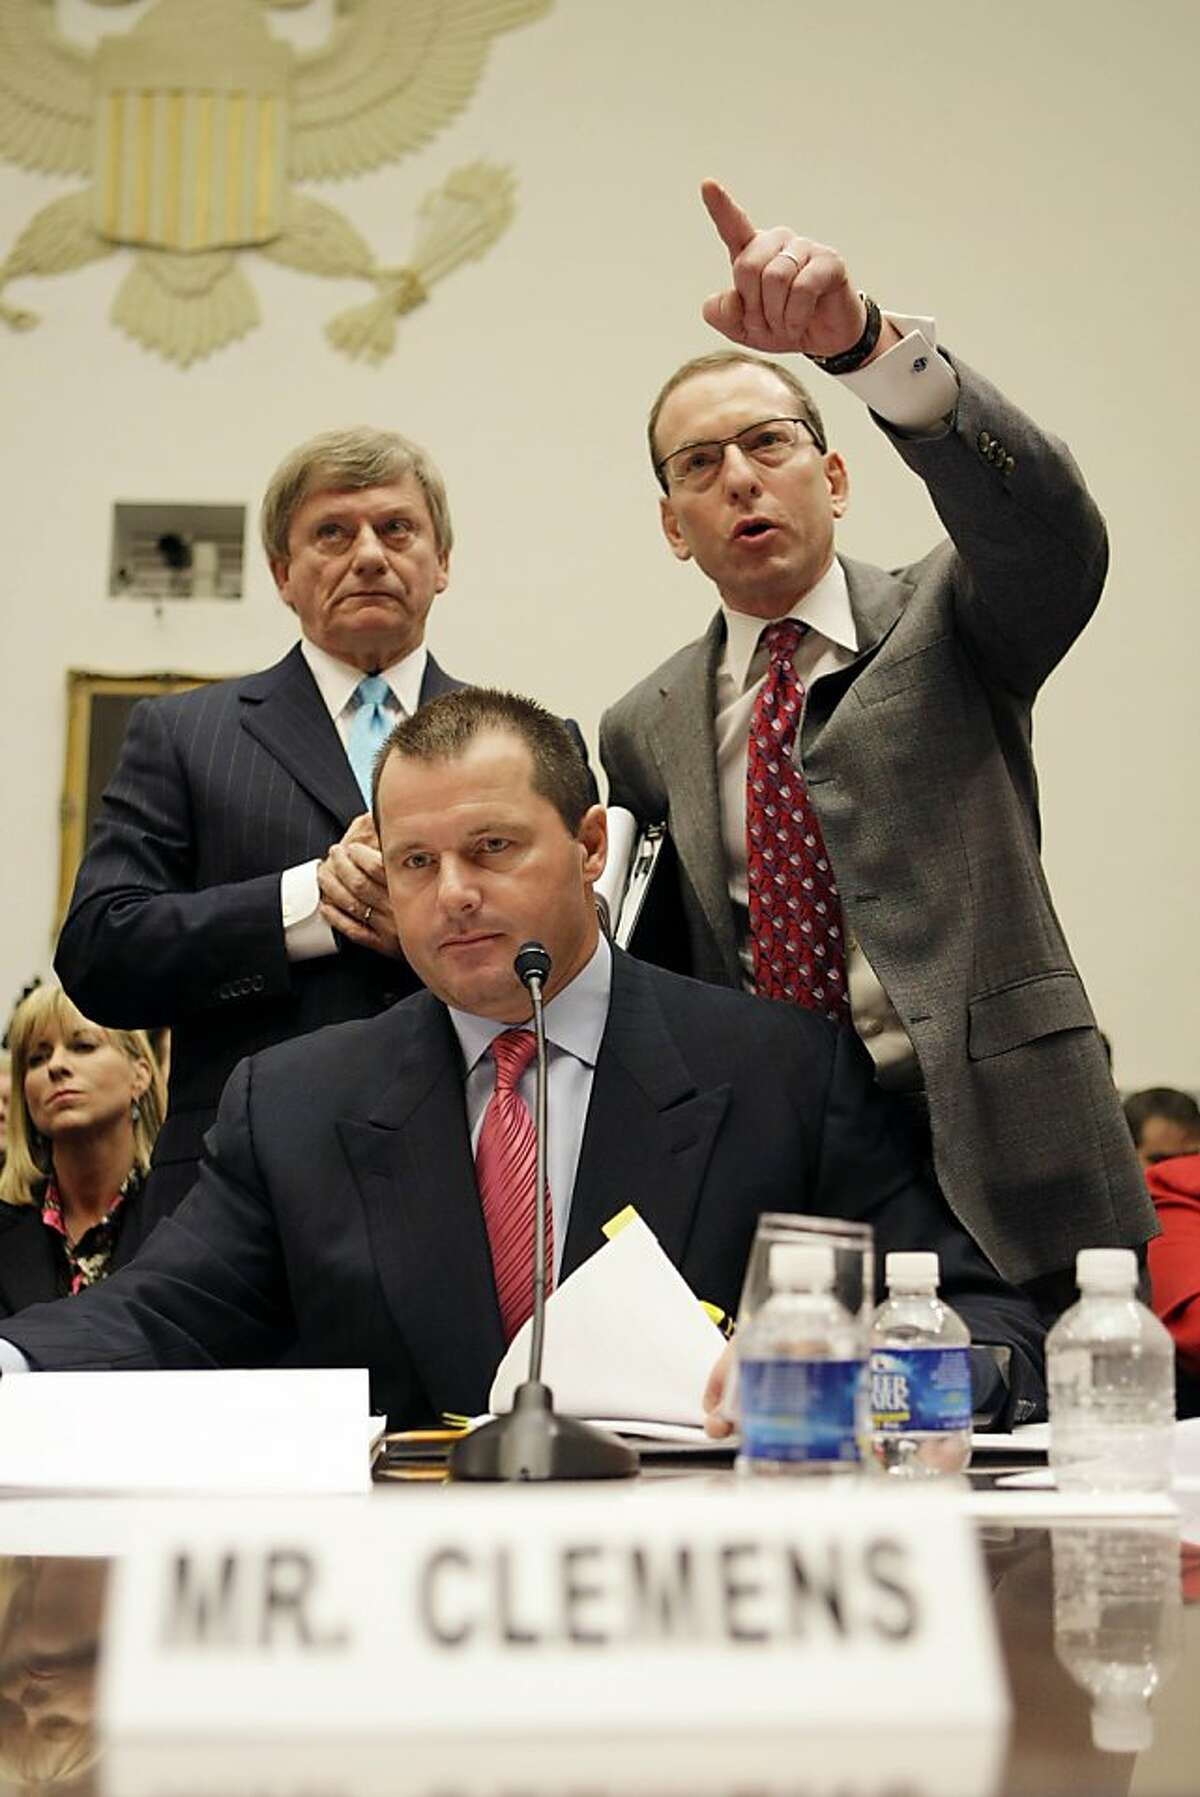 ** CORRECTS SPELLING OF LANNY BREUER ** Former New York Yankees baseball pitcher Roger Clemens, center, listens as his attorney's Rusty Hardin, left, and Lanny Breuer, right, try to address members questions during testimony on Capitol Hill in Washington, Wednesday, Feb. 13, 2008, before the House Oversight, and Government Reform committee hearing on drug use in baseball. (AP Photo/Pablo Martinez Monsivais) Ran on: 02-14-2008 Roger Clemens sits and listens as attorneys Rusty Hardin (left) and Lanny Breuer try to address committee members questions during testimony on Capitol Hill. Ran on: 02-14-2008 Roger Clemens listens as attorneys Rusty Hardin (left) and Lanny Breuer try to address House Oversight Committee members questions during testimony on Capitol Hill. Ran on: 08-31-2011 Assistant U.S. Attorney General Lanny Breuer. Ran on: 08-31-2011 Assistant U.S. Attorney General Lanny Breuer. Ran on: 08-31-2011 Assistant U.S. Attorney General Lanny Breuer.